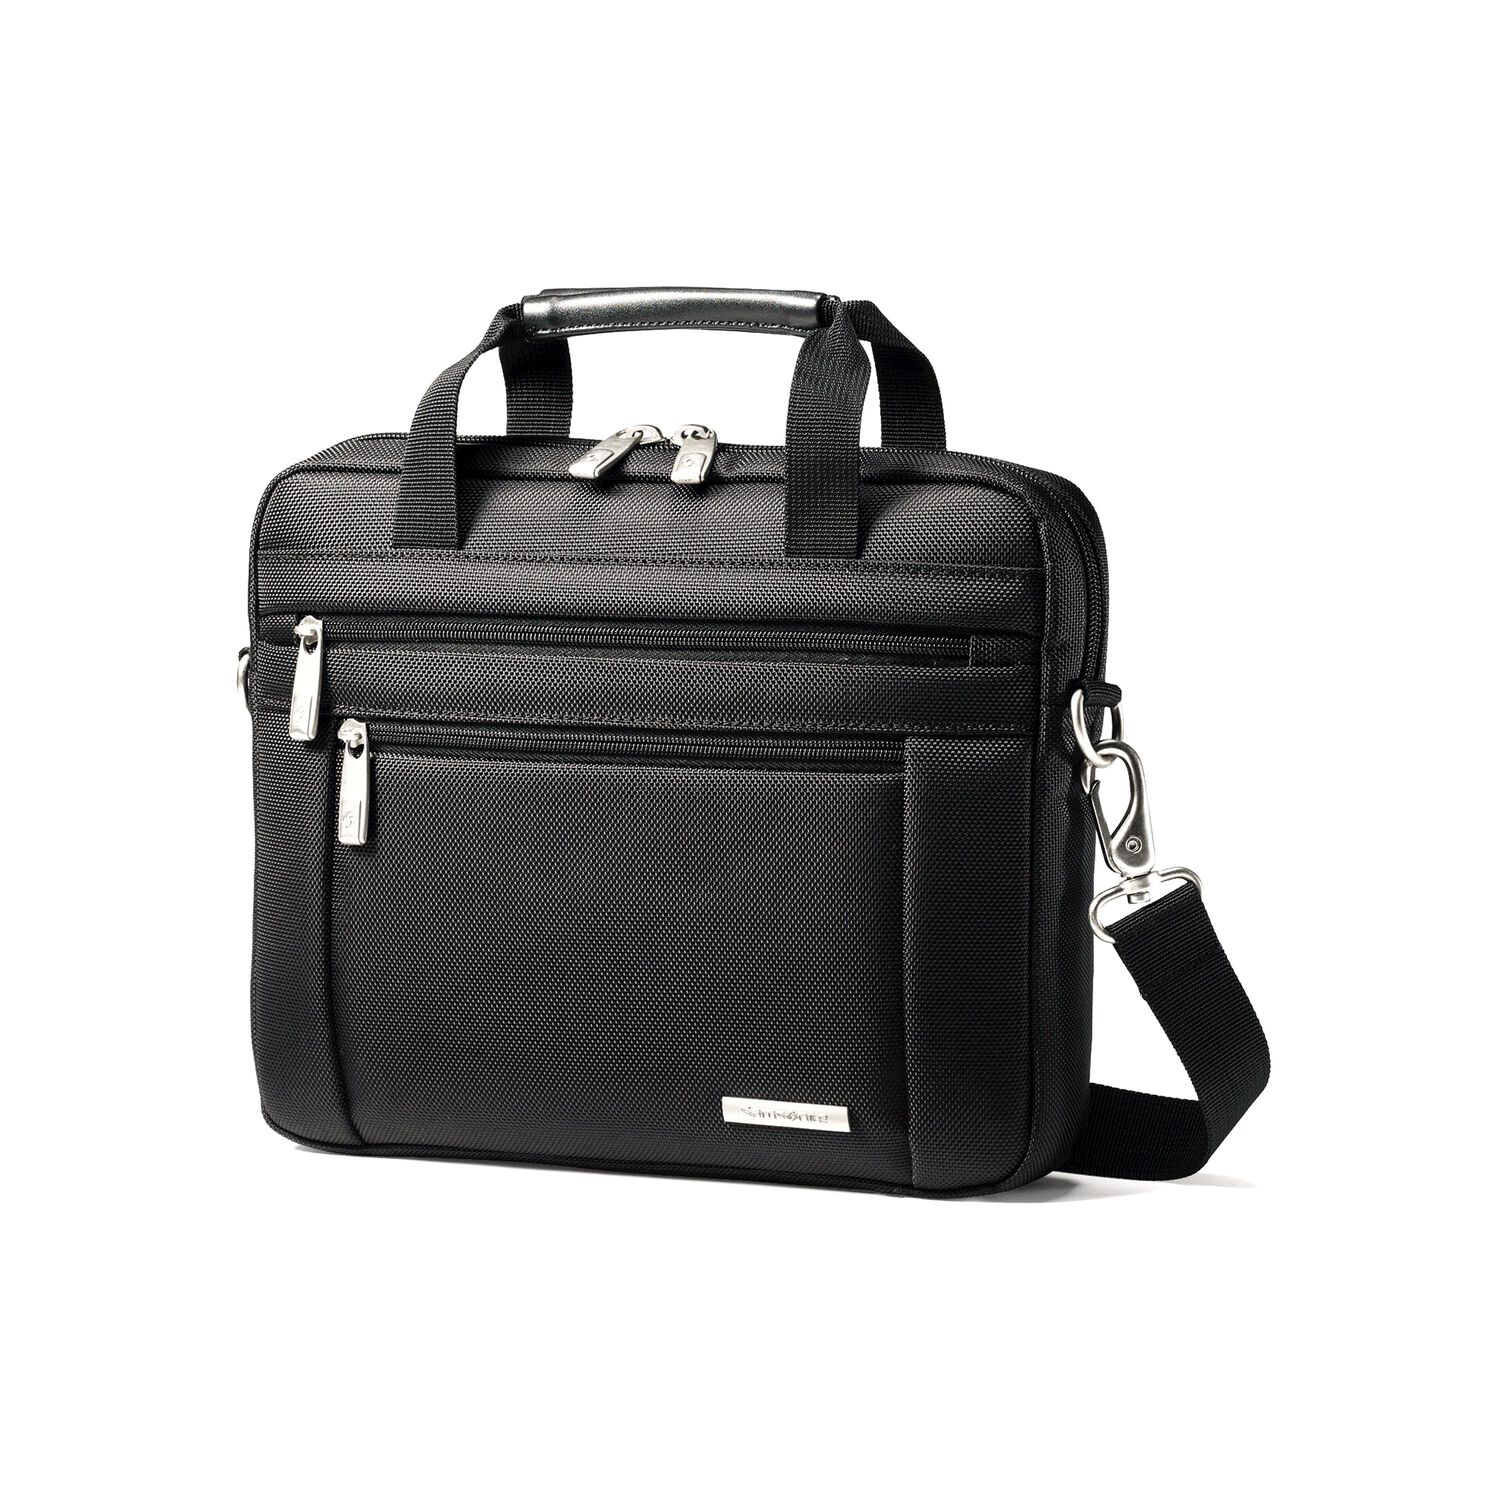 95f9559a52 Samsonite Classic Business Tablet iPad Shuttle in the color Black.